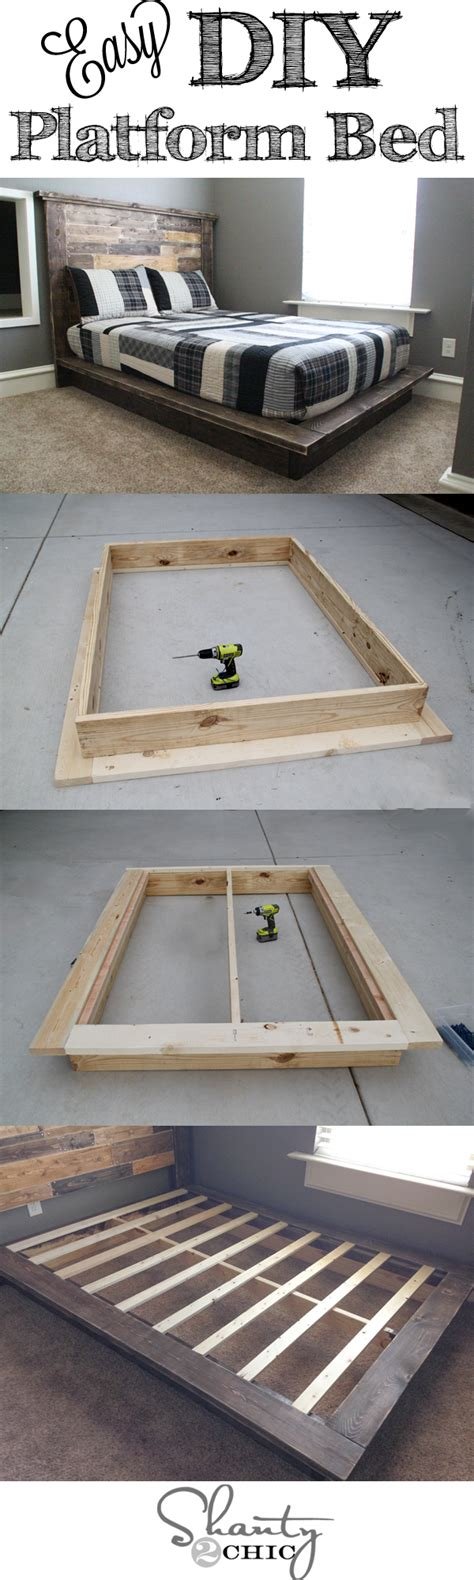 Diy Platform Bed Plans Diy Furniture Project Plan From Shanty2chic Learn How To Build An Easy Platform Bed Home